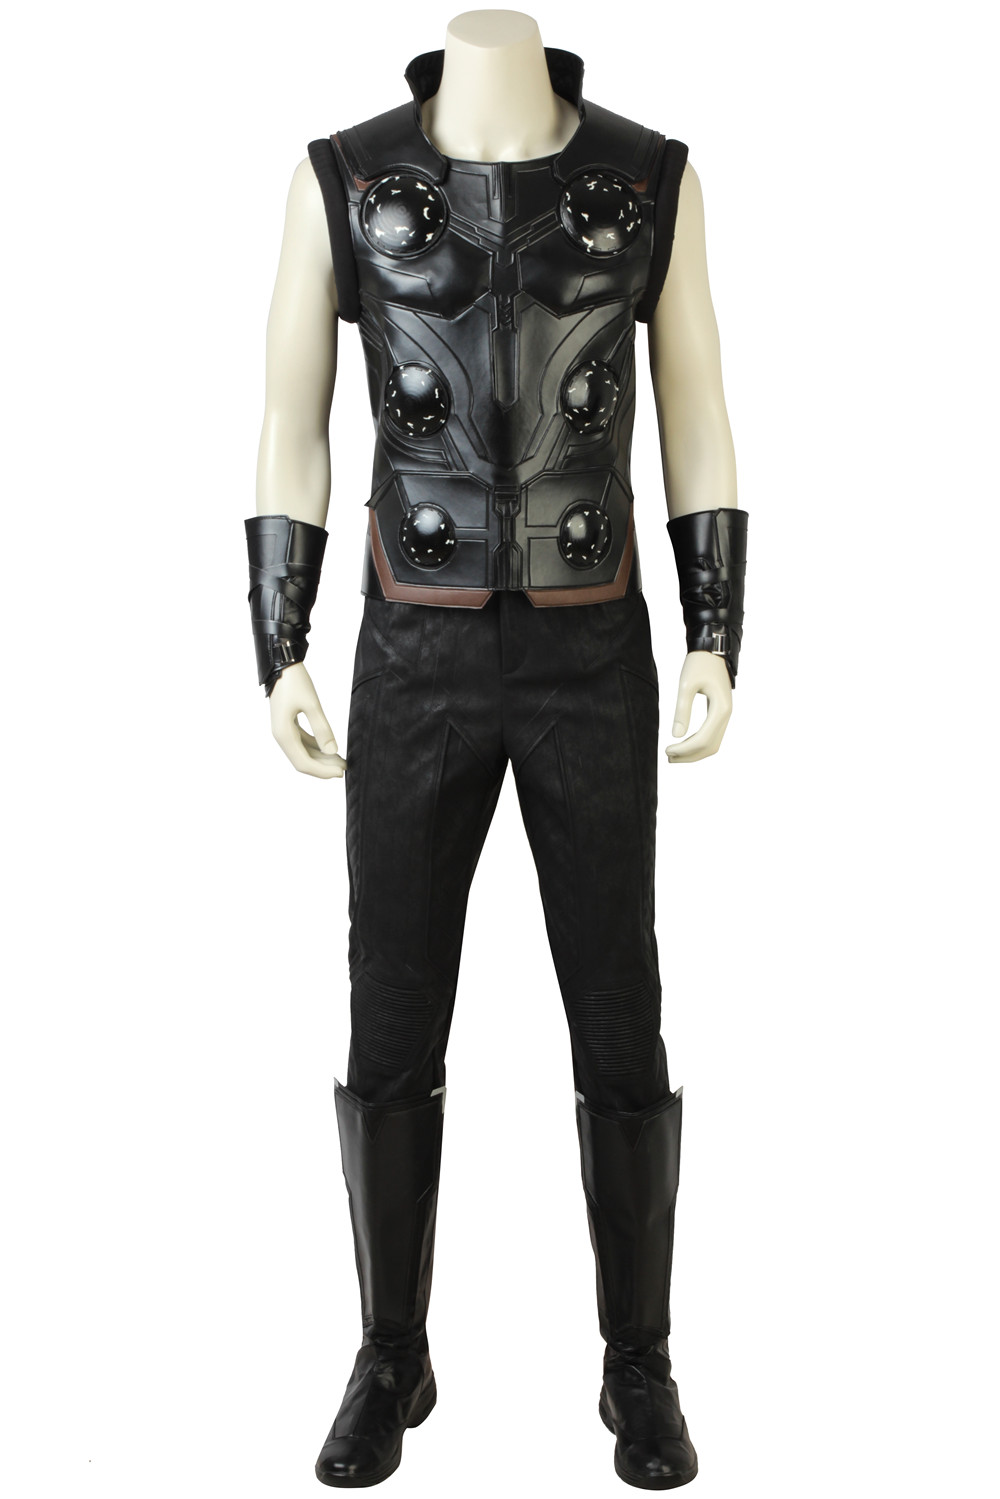 The Avengers : Infinity War Cosplay Thor Cosplay Costume Outfit Superhero Halloween Clothes Party Custom Made Adult Men